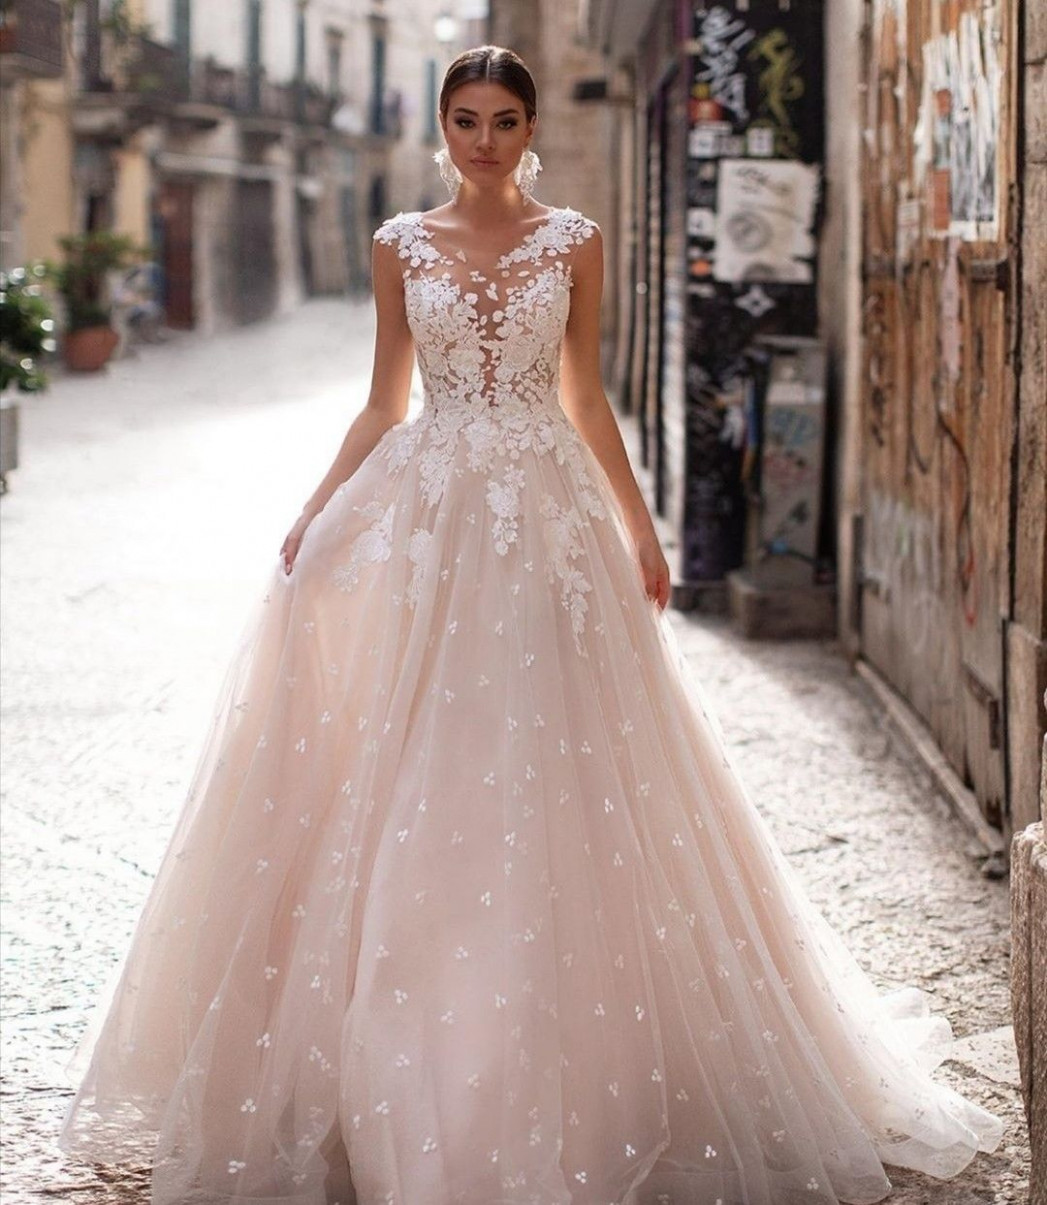 brautkleid rose spitze  Wedding dresses, Wedding dresses blush